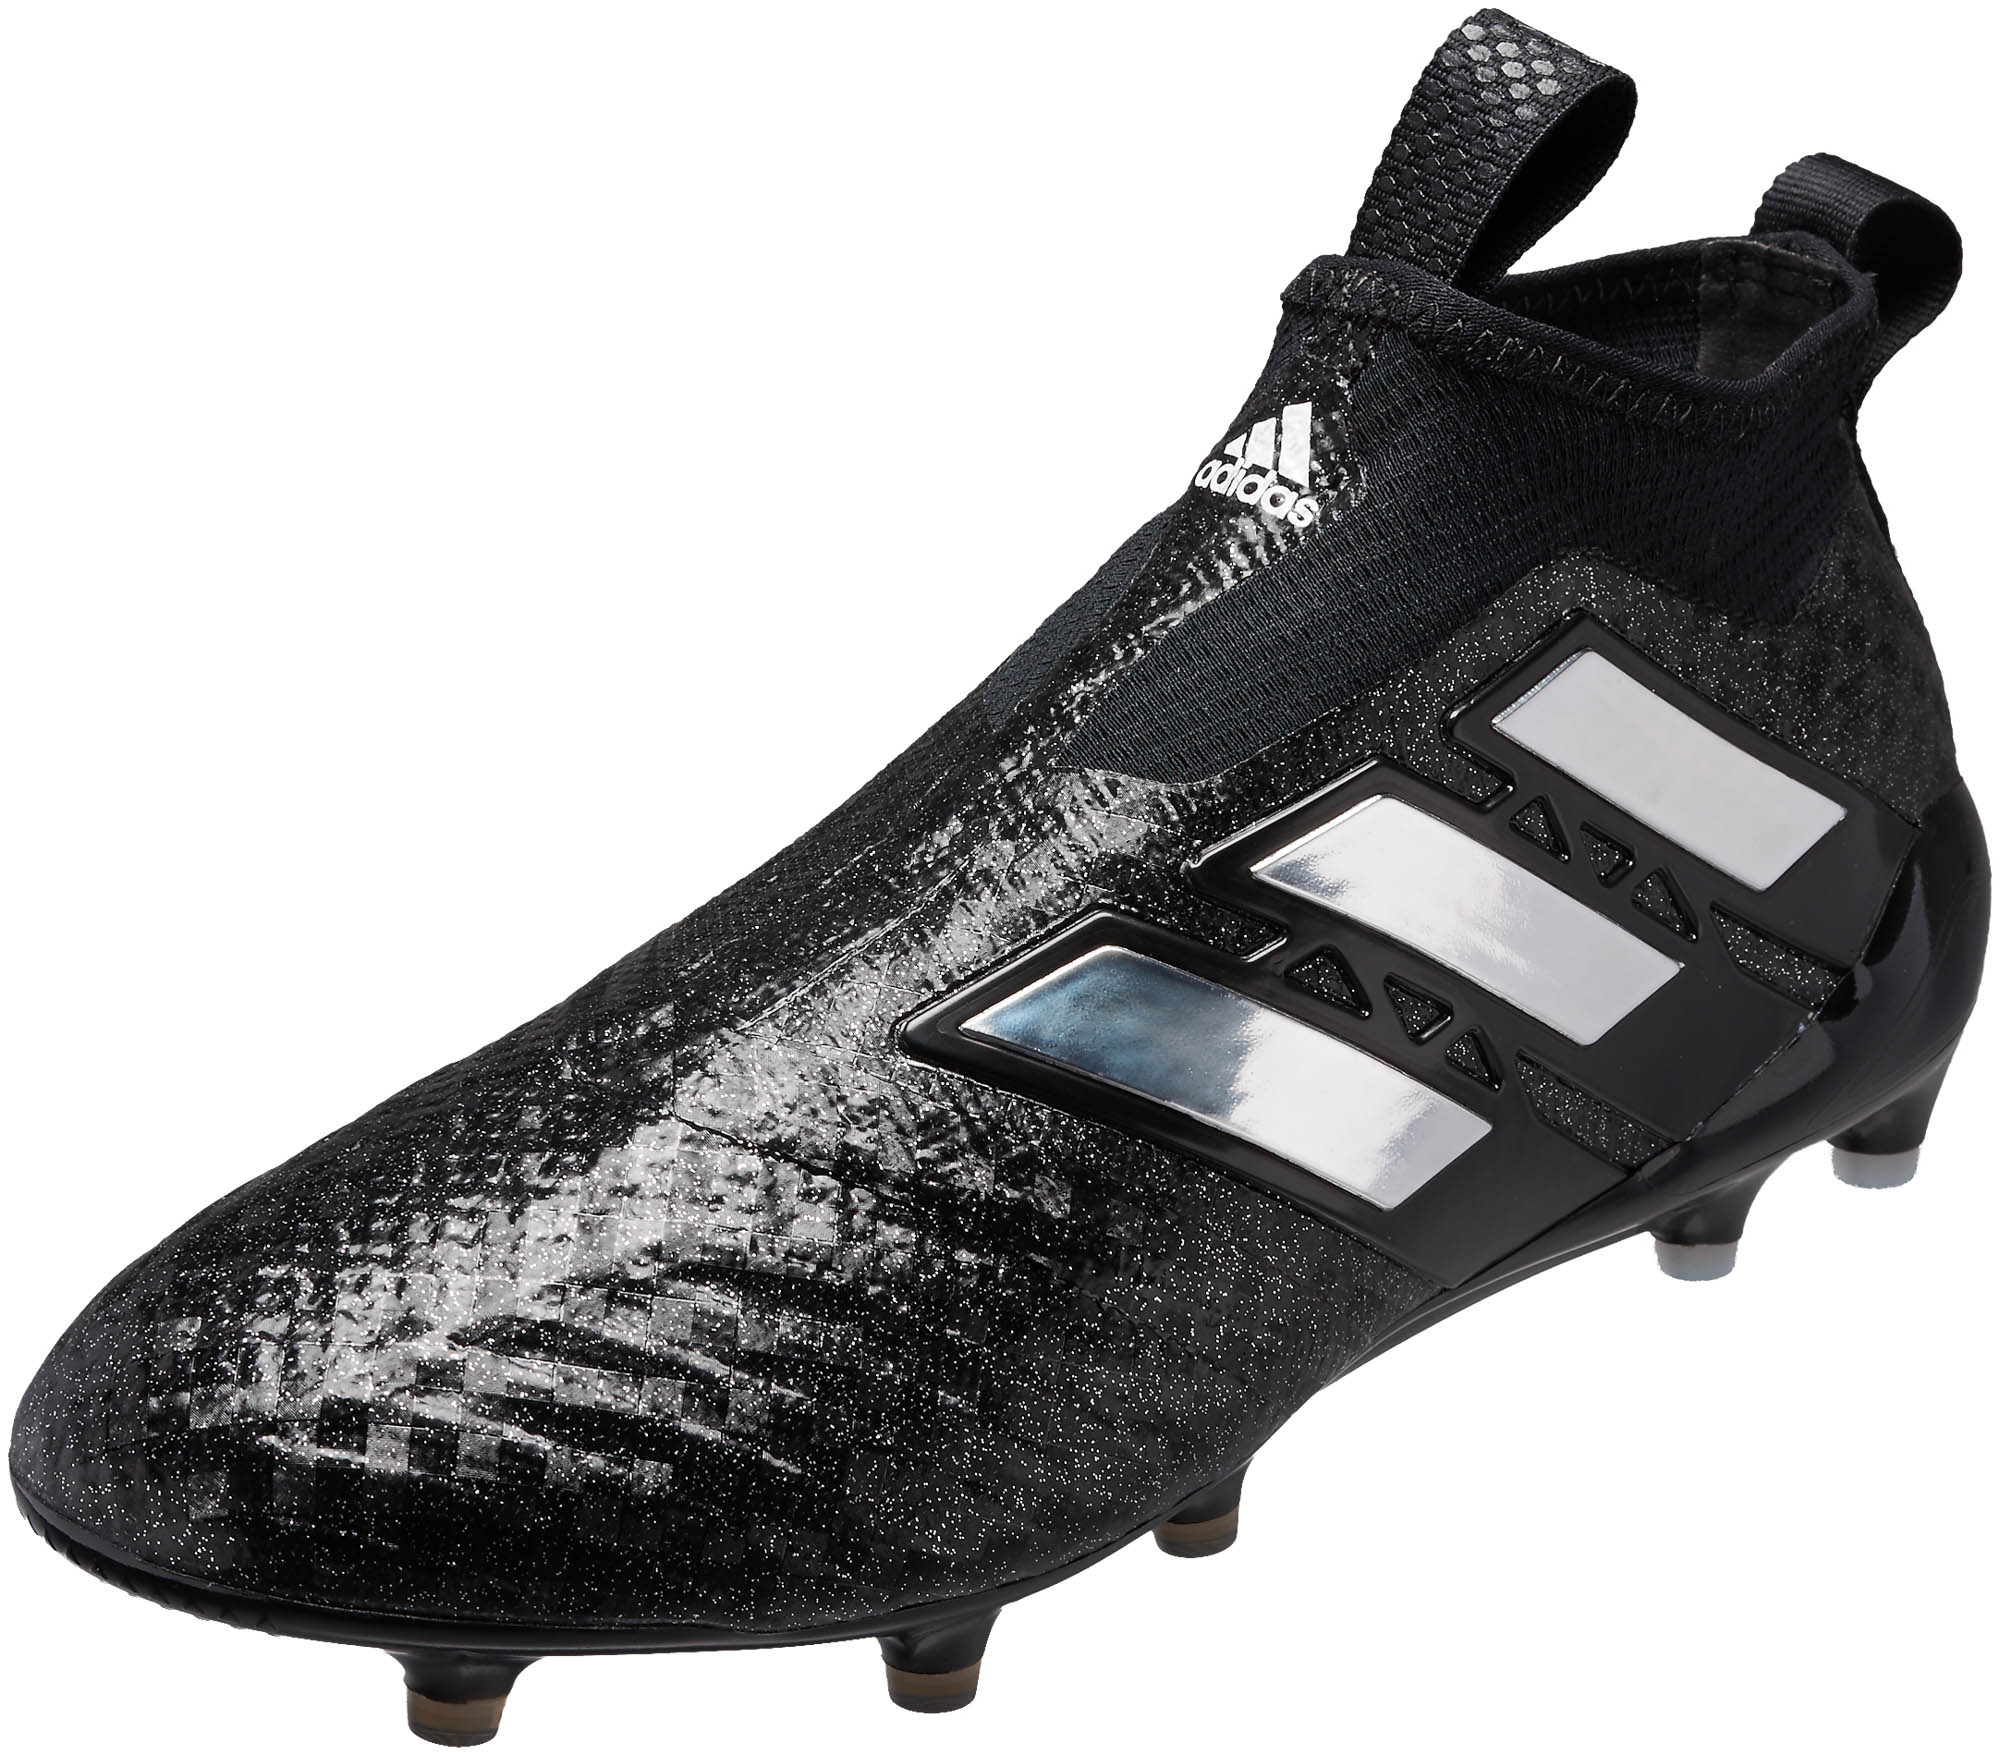 9ada74508 adidas ACE 17 Purecontrol - Black ACE FG Soccer Cleats